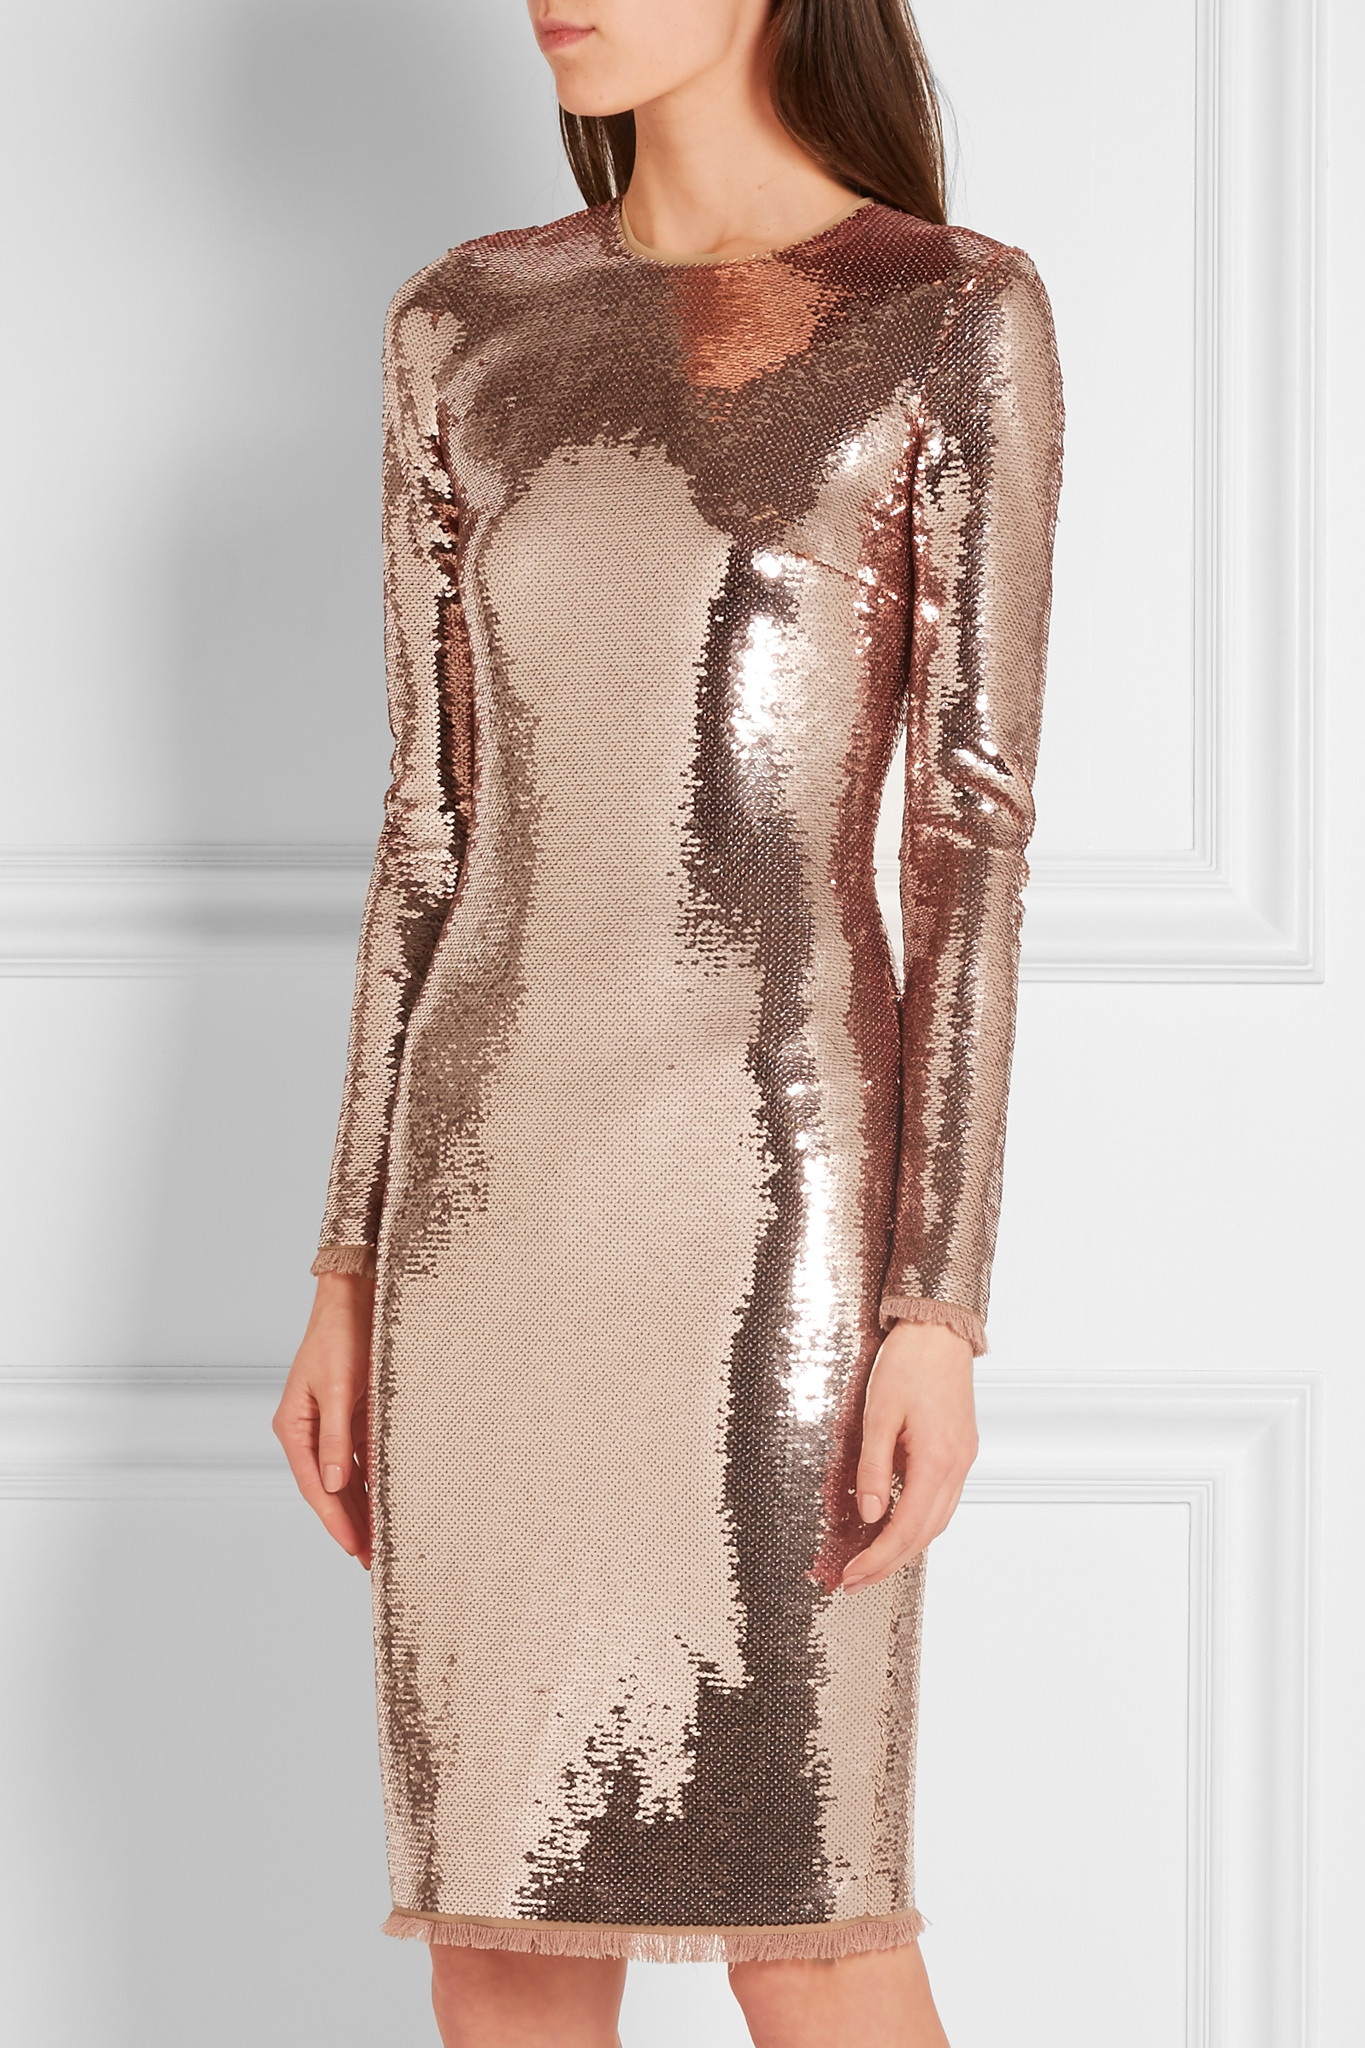 Tom ford Sequined Tulle Dress in Metallic